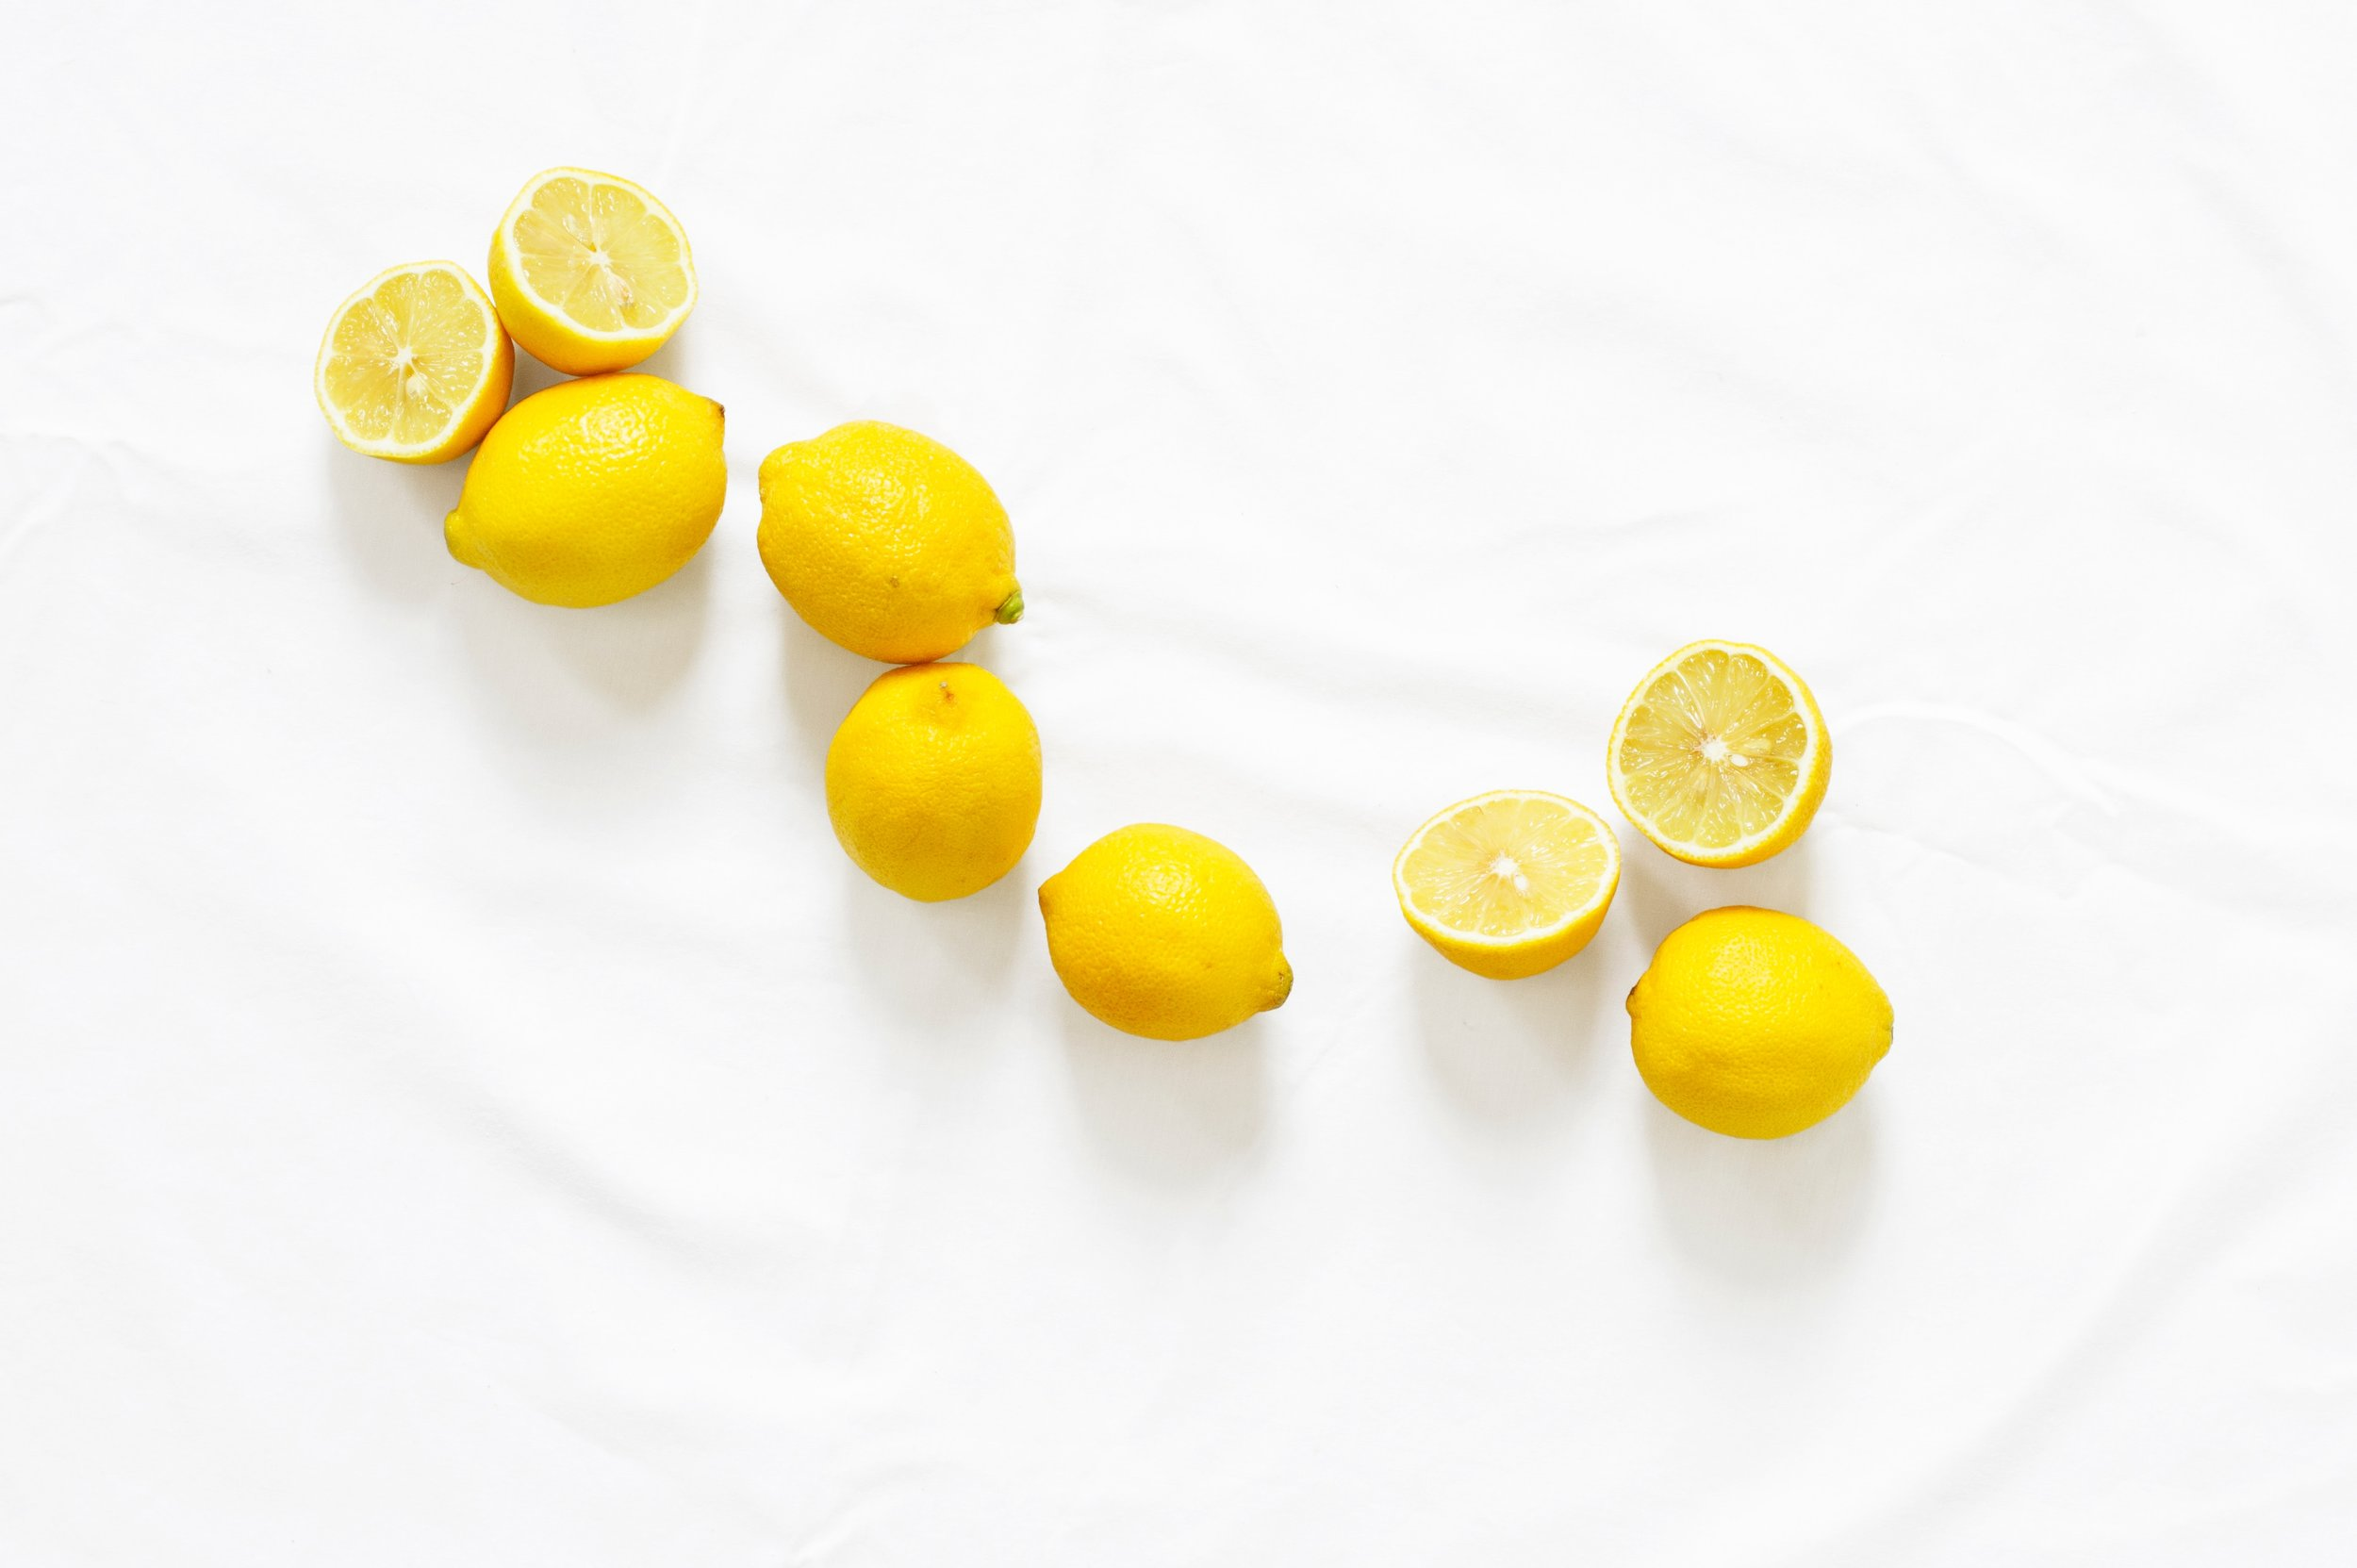 lemons-on-table